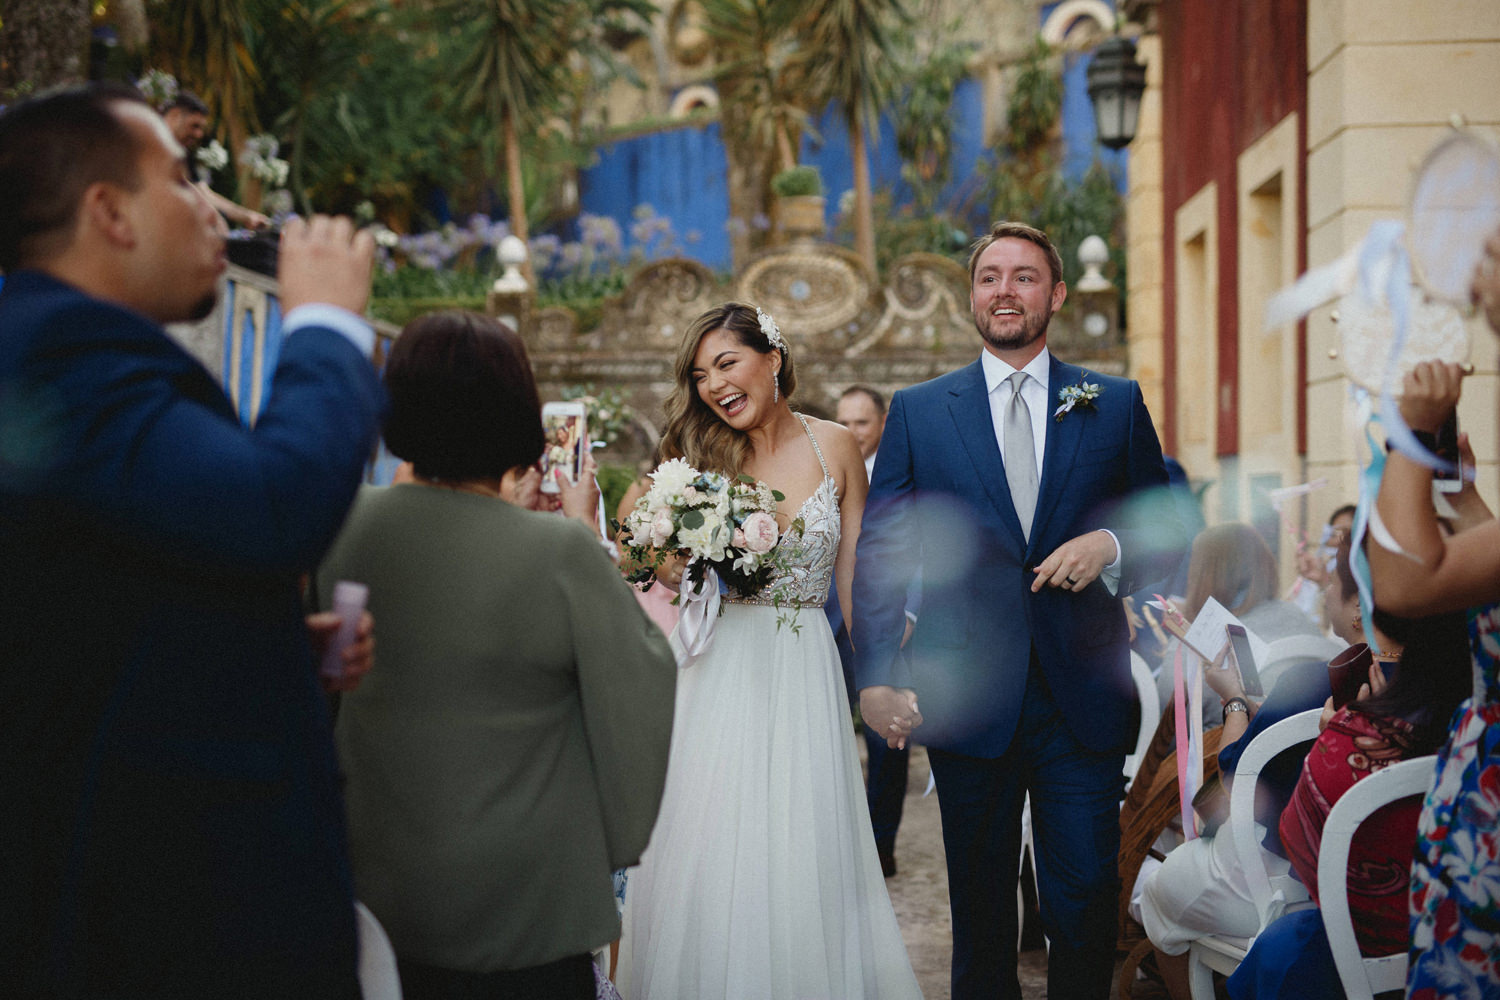 bubble exit in palace destination wedding in lisbon portugal